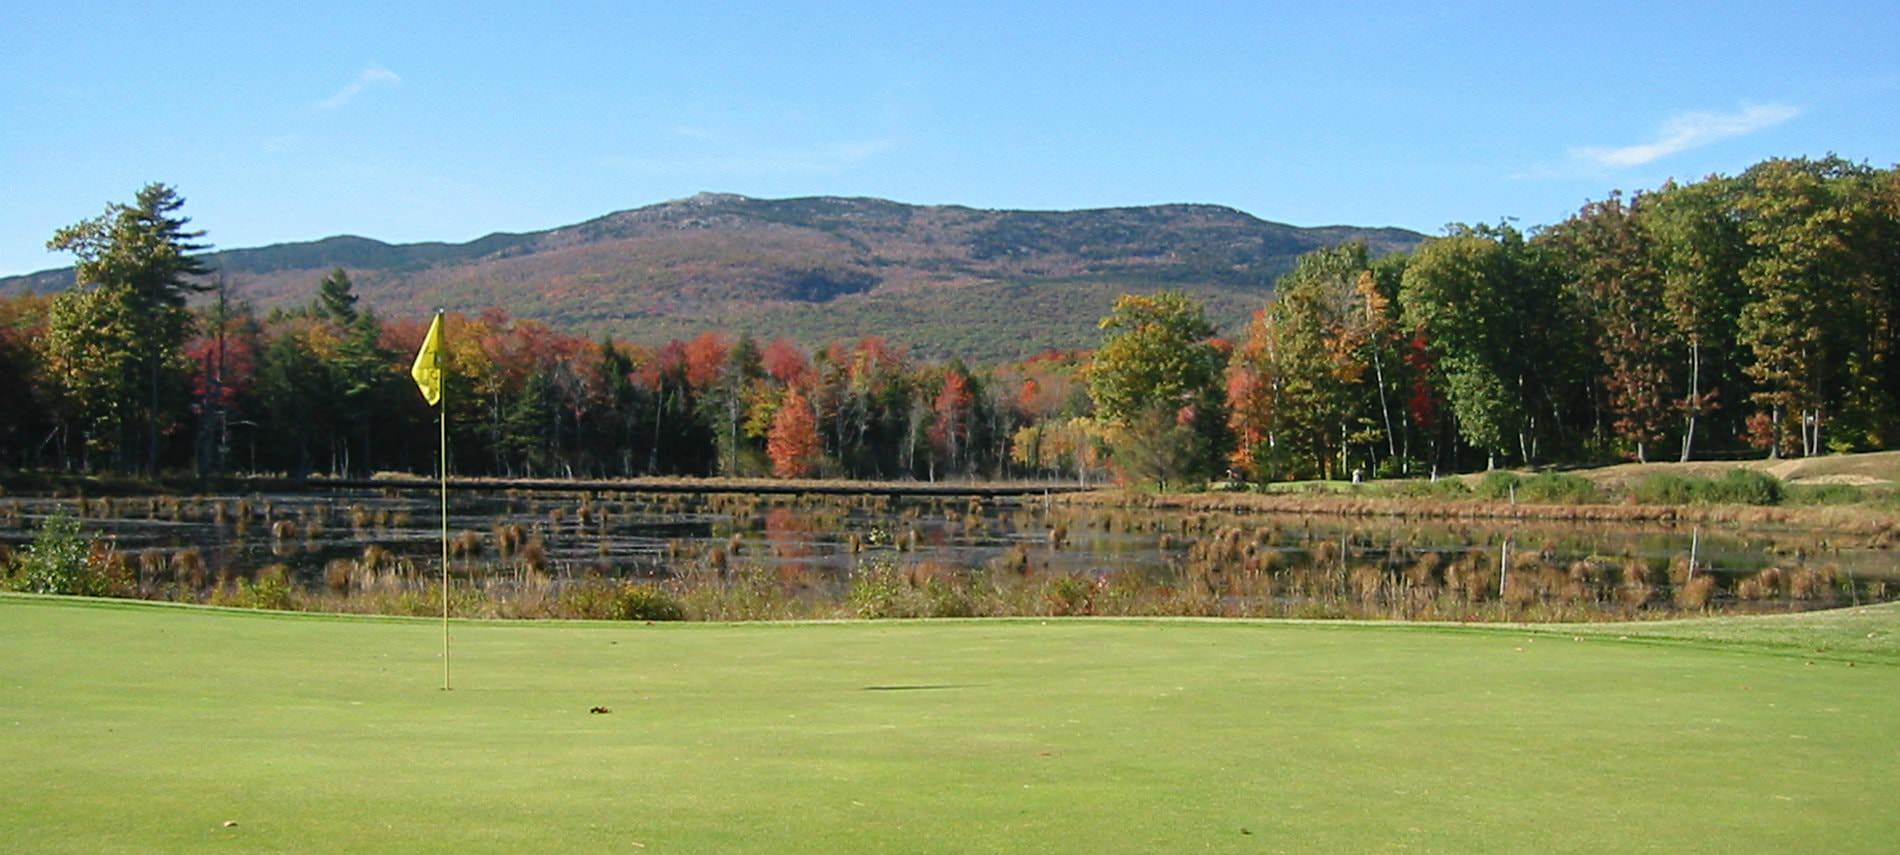 Green grassy golf course with autumn colored trees, blue skies and Mount Monadnock in the background